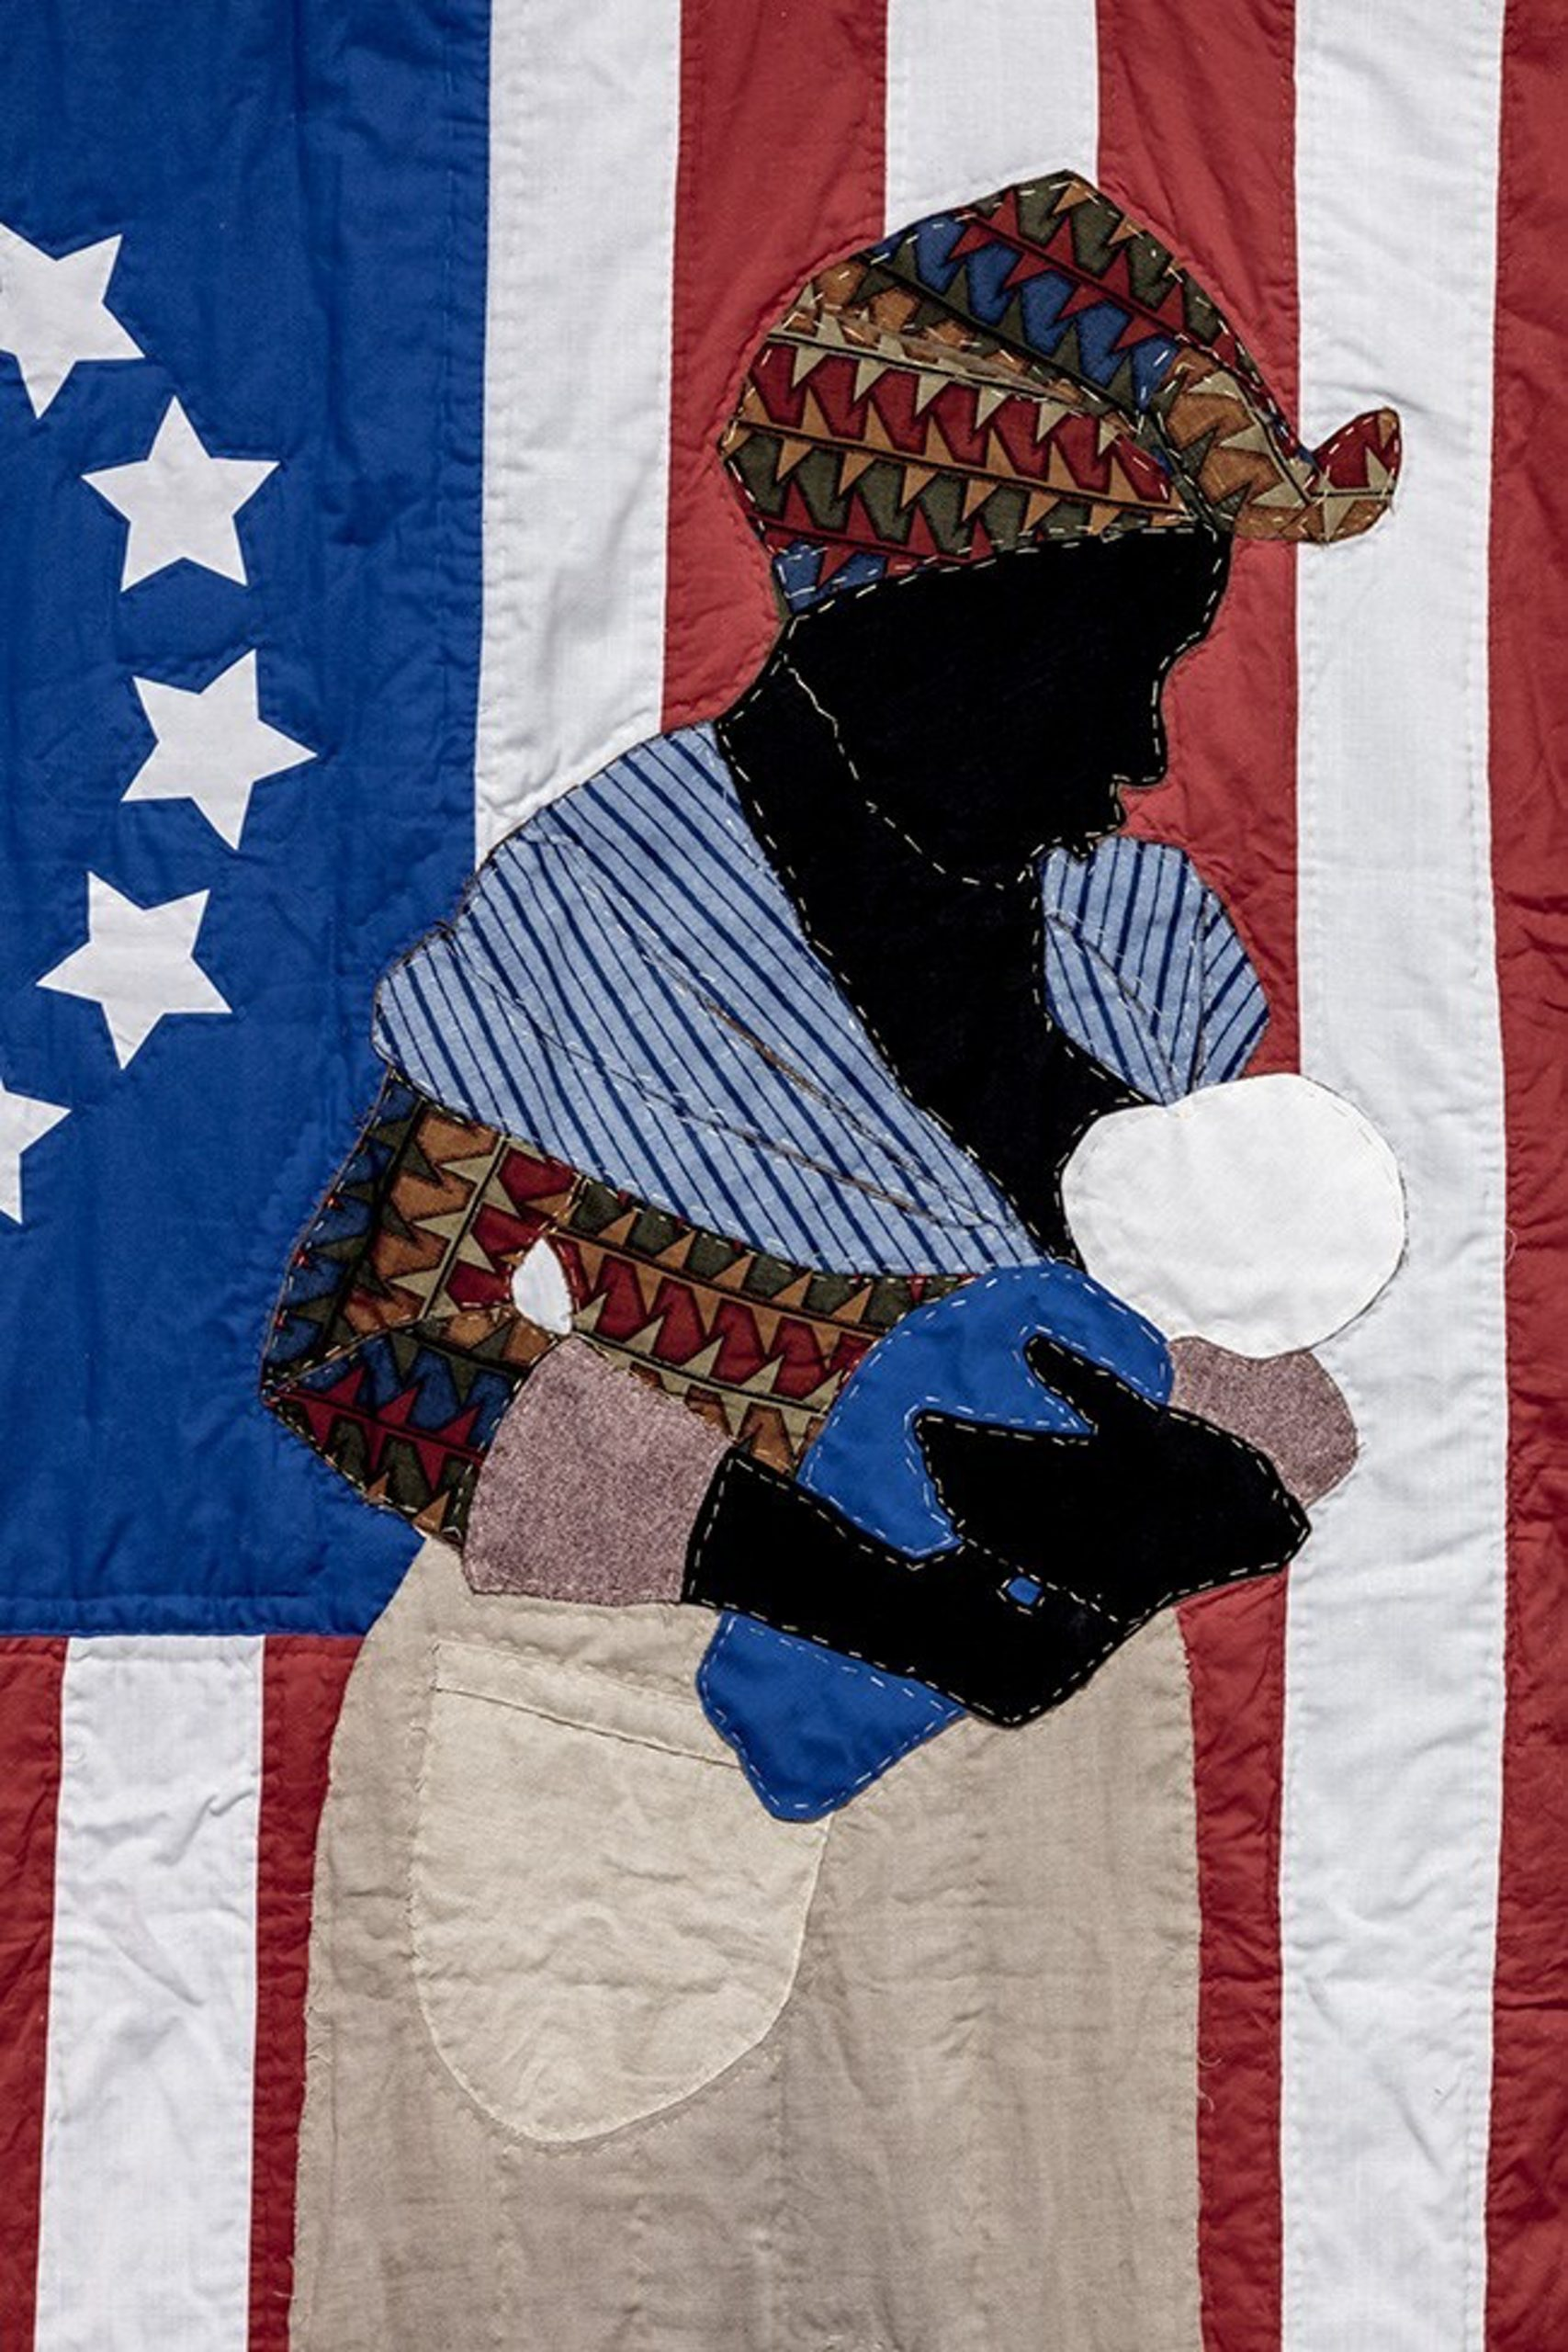 Stephen Towns, Birth of a Nation (detail) (2014). Natural and synthetic fabric, polyester and cotton thread, metallic thread, Thermoweb, cotton/polyester blend batting, coffee and tea stain, and acrylic paint, 90 x 66 inches. Image courtesy of the artist and Art+ Practice. Photo: Joshua White.